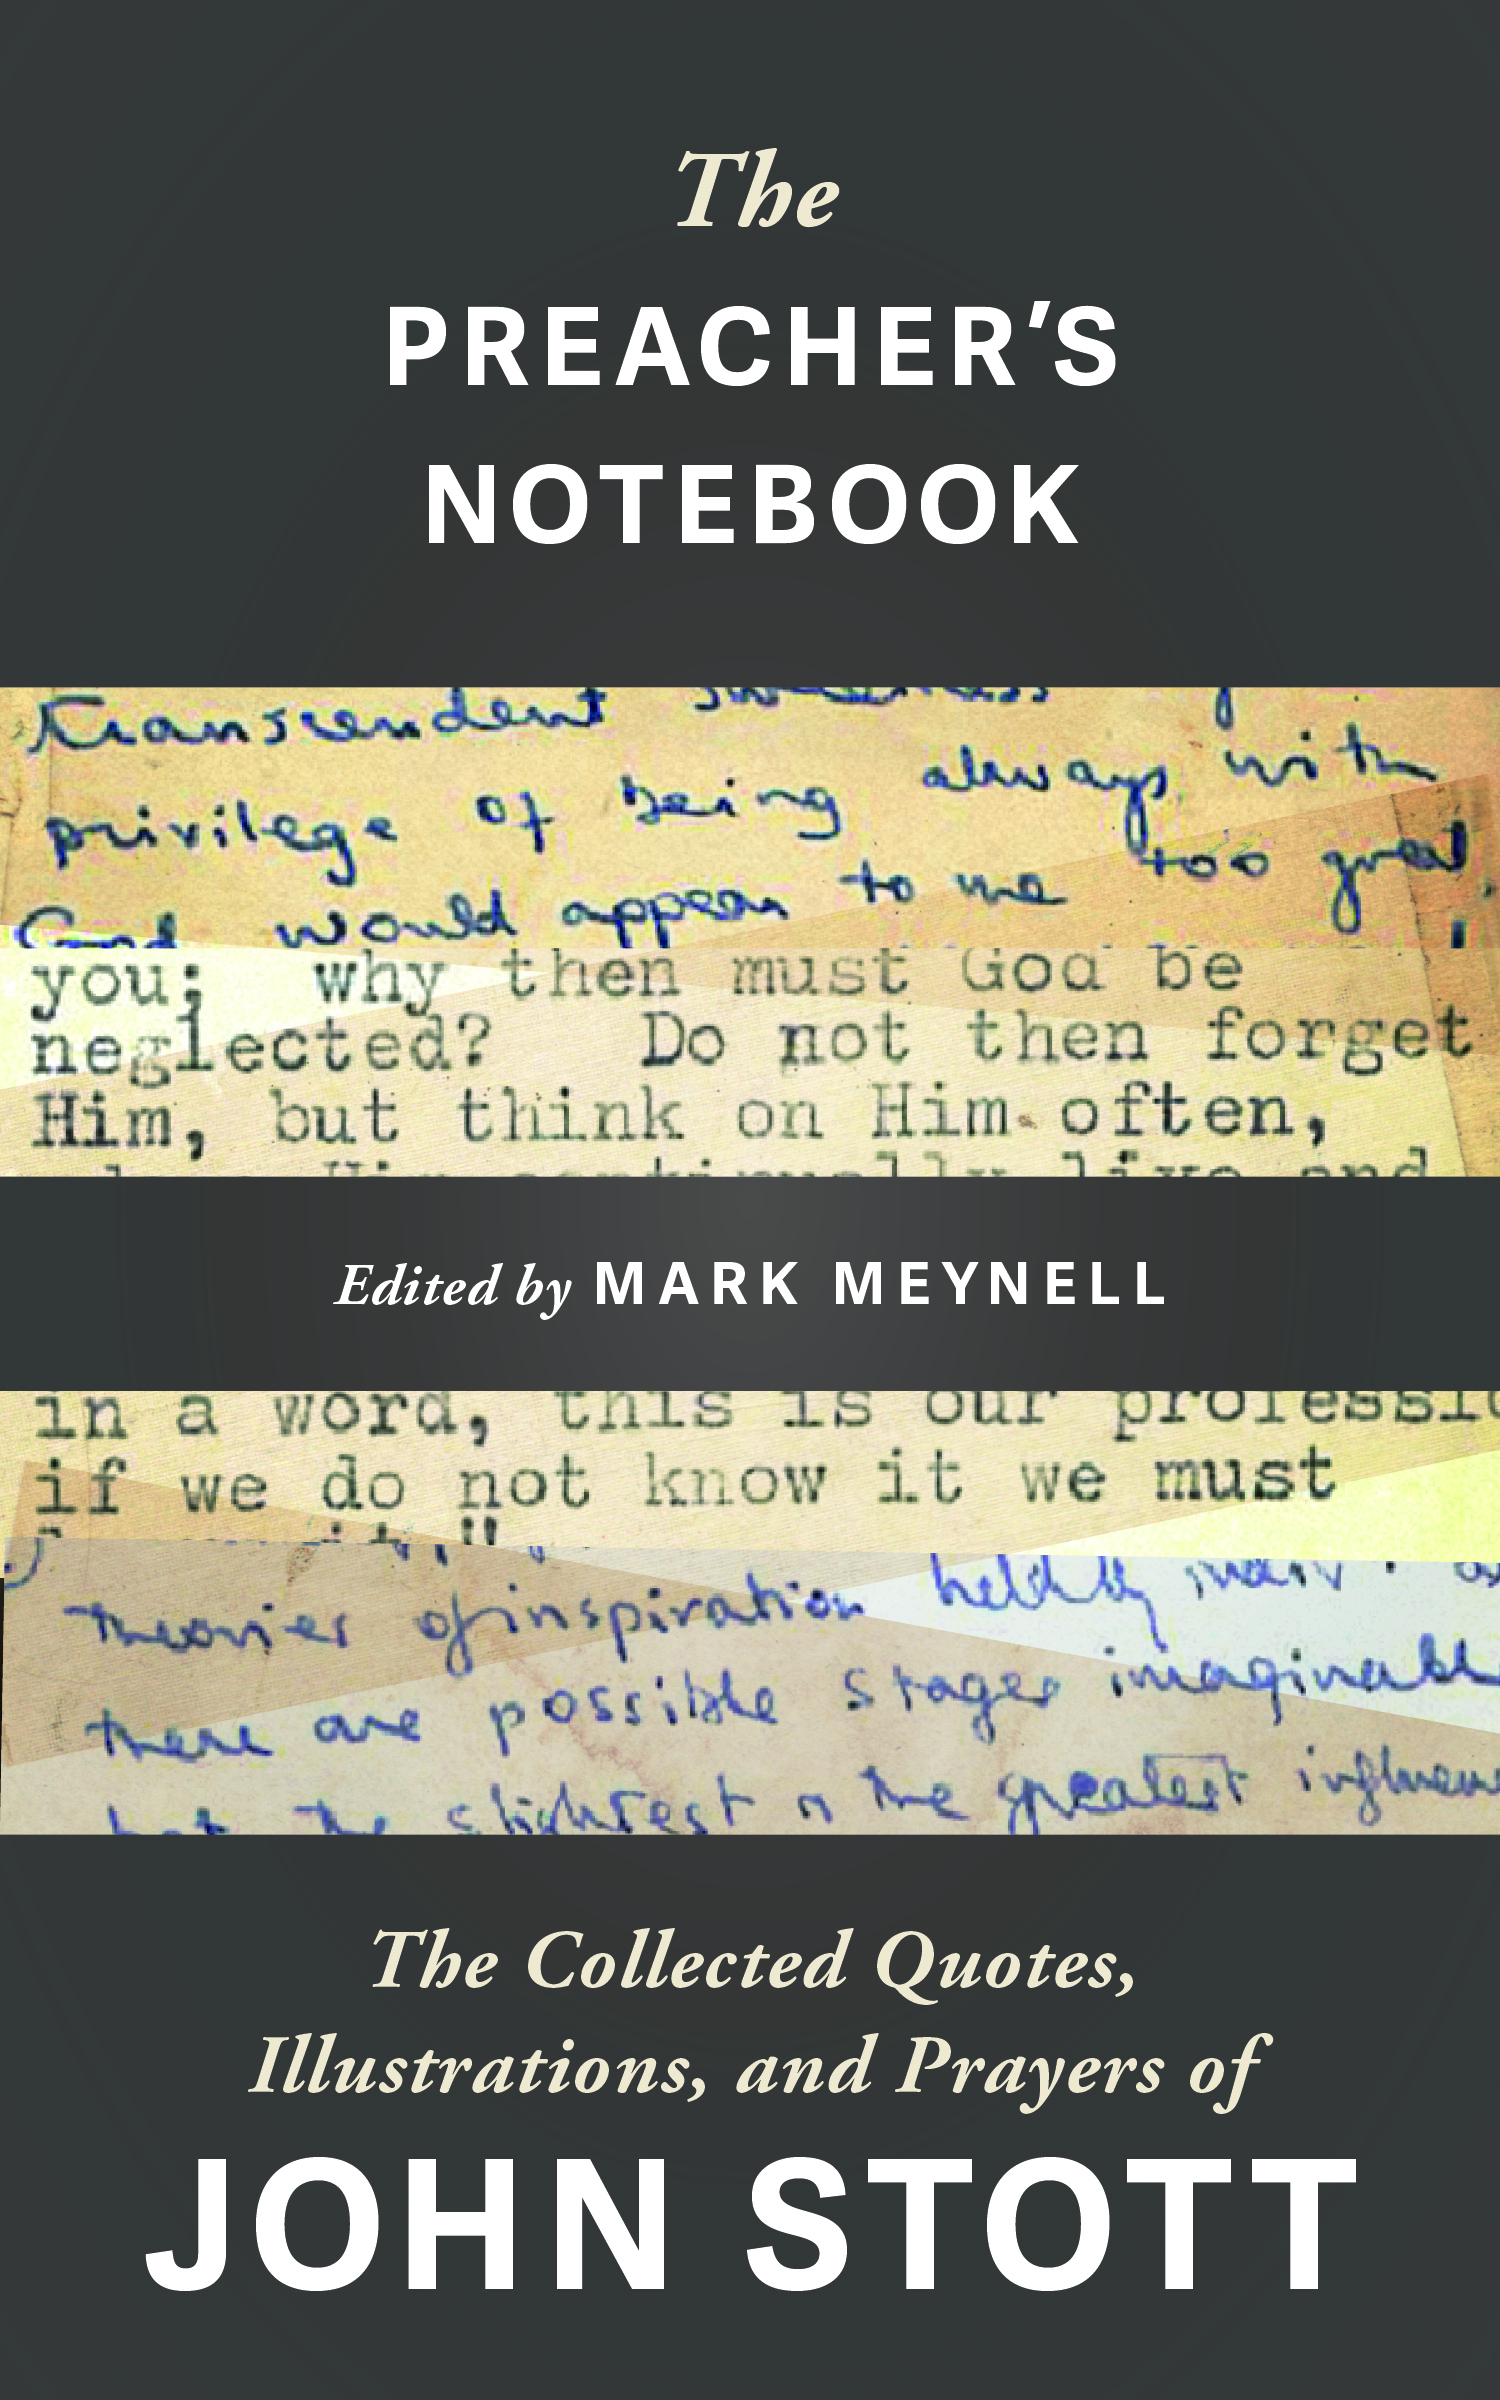 The Preacher's Notebook: The Collected Quotes, Illustrations, and Prayers of John Stott